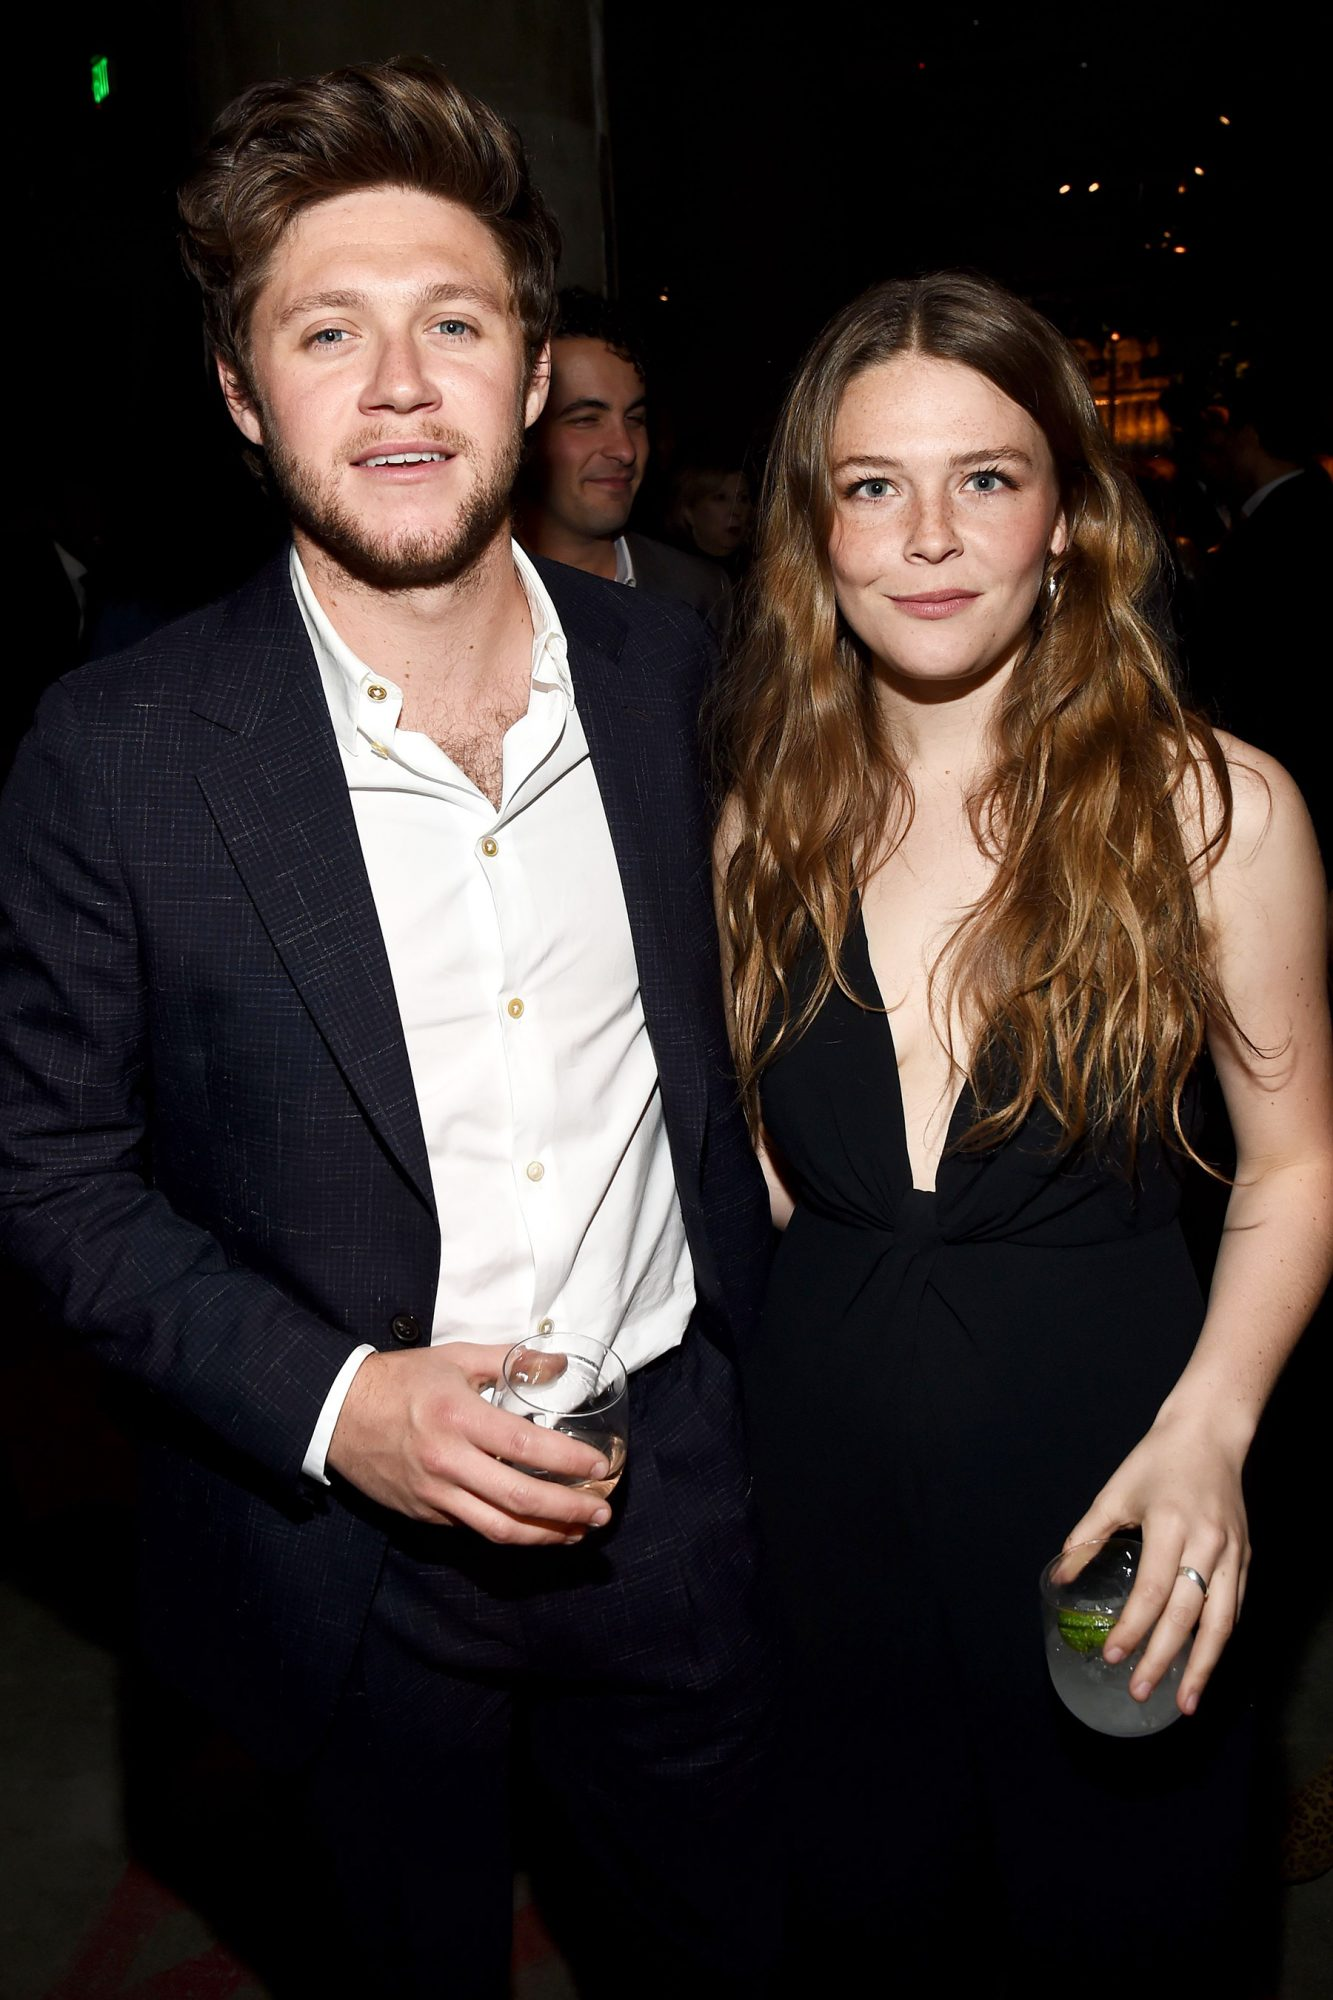 Universal's Grammys After Party, Inside, ROW DTLA, Los Angeles, USA - 10 Feb 2019